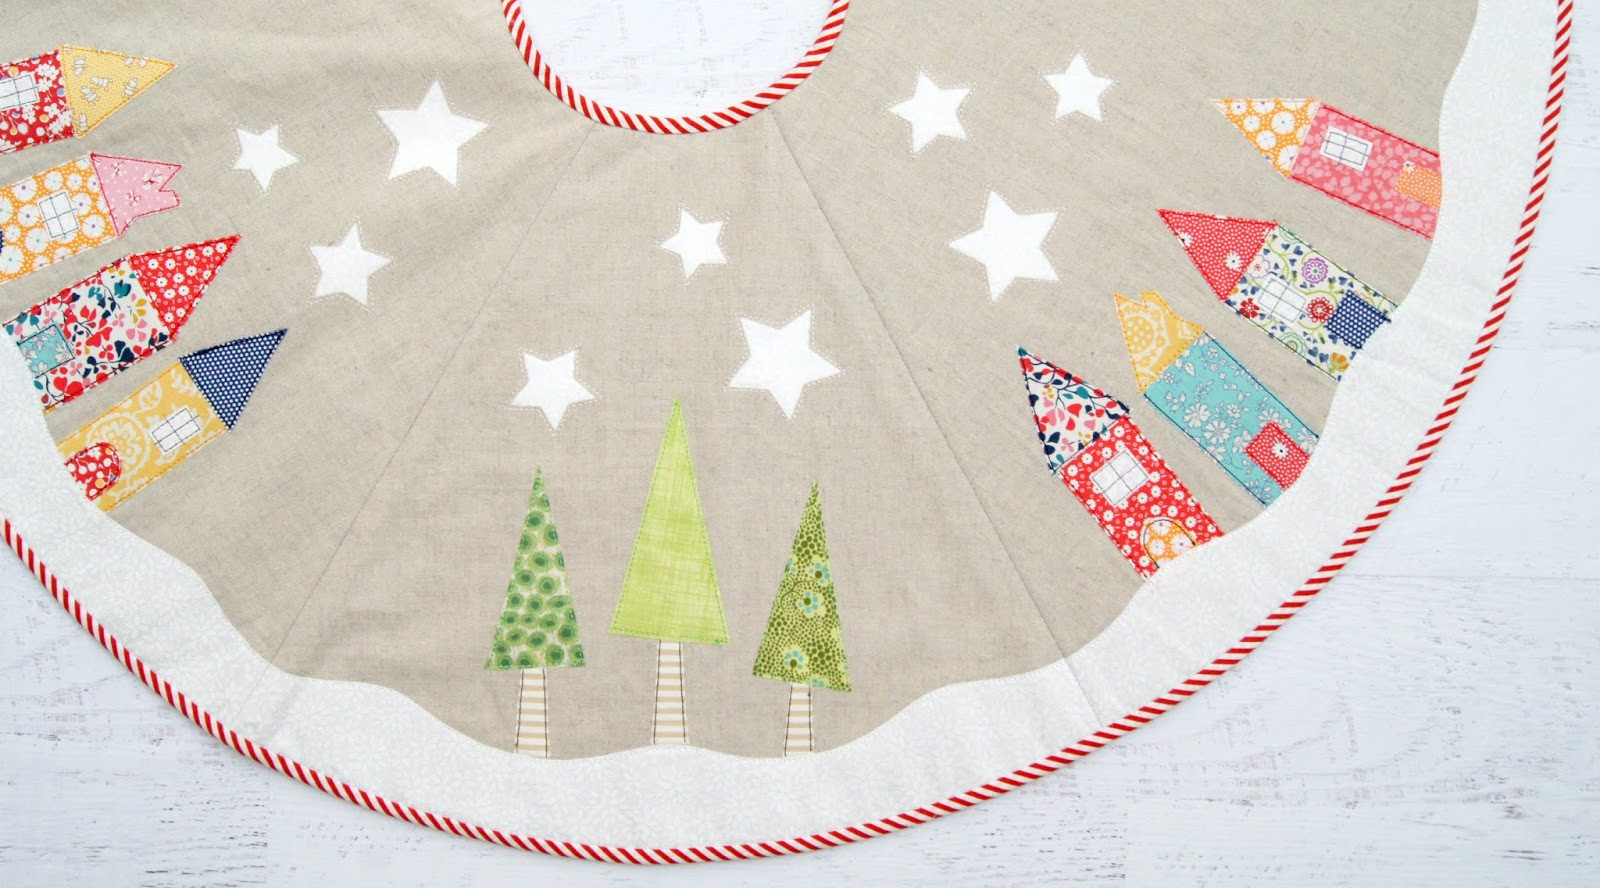 Tree Skirt Pattern Inspirational Tied with A Ribbon Yule Tide Tree Skirt Sew Along Of Tree Skirt Pattern Elegant Christmas Goose Tree Skirt & Card Holder